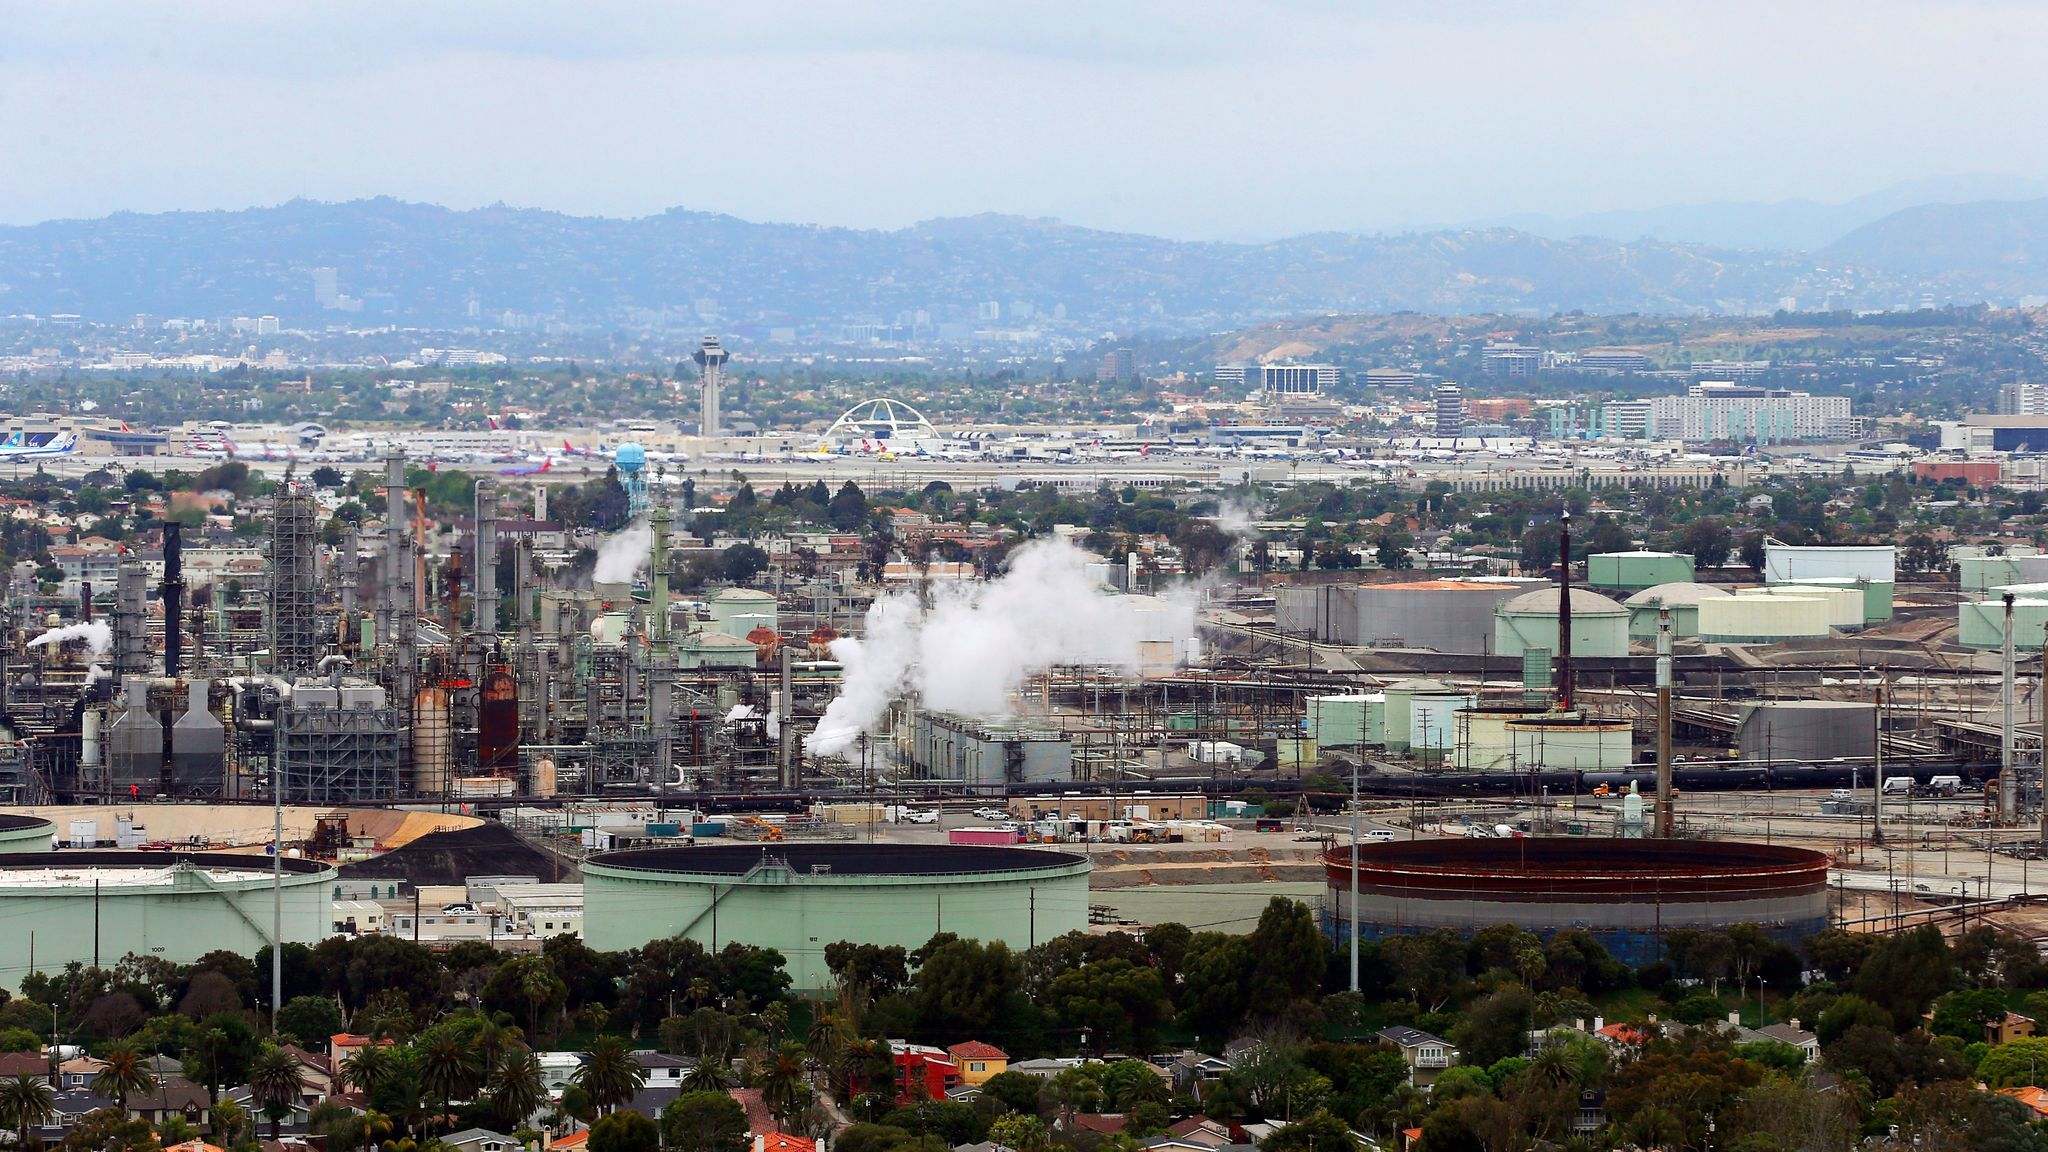 An oil refinery in El Segundo, one of many facilities that must comply with California's cap-and-trade program.